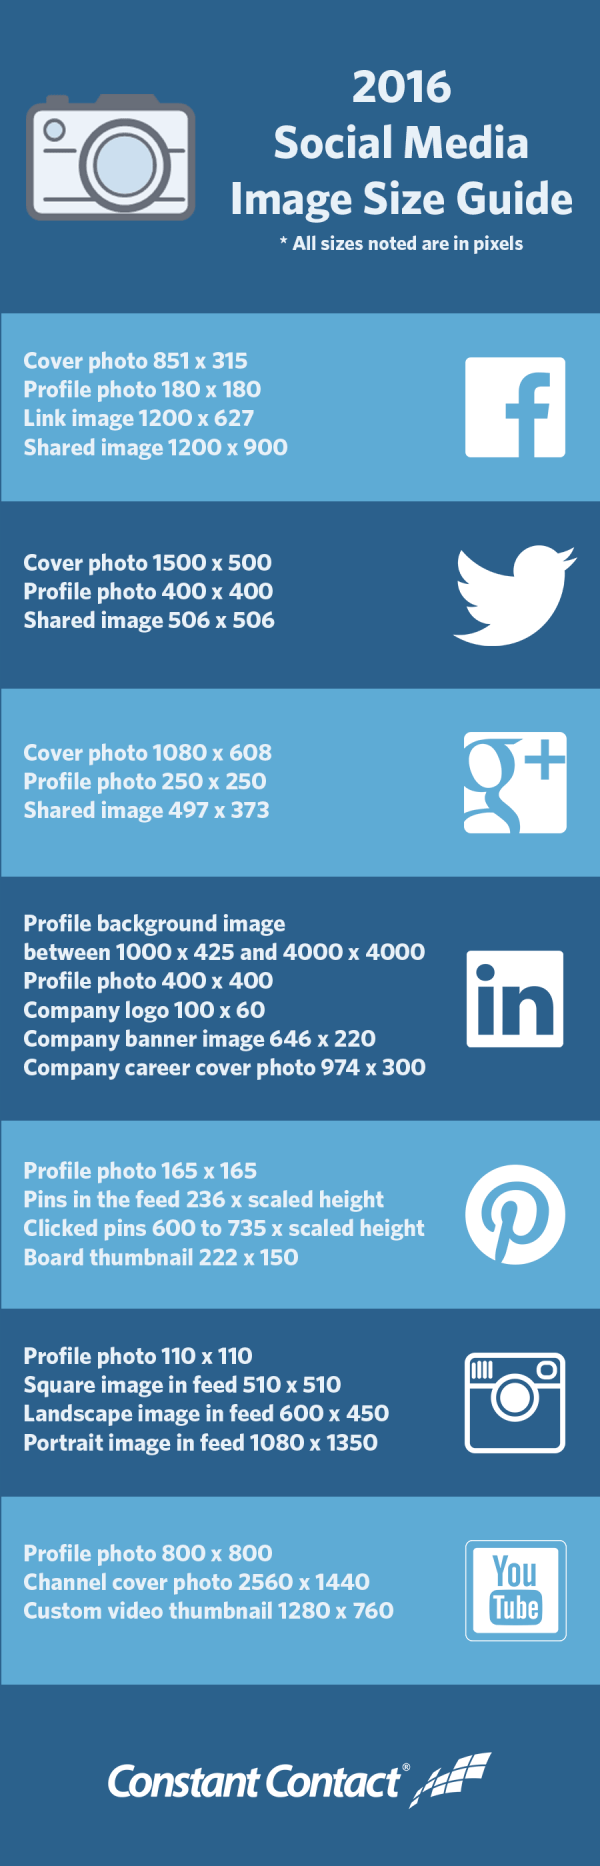 Noted: 2016 Social Media Image Size Cheat Sheet